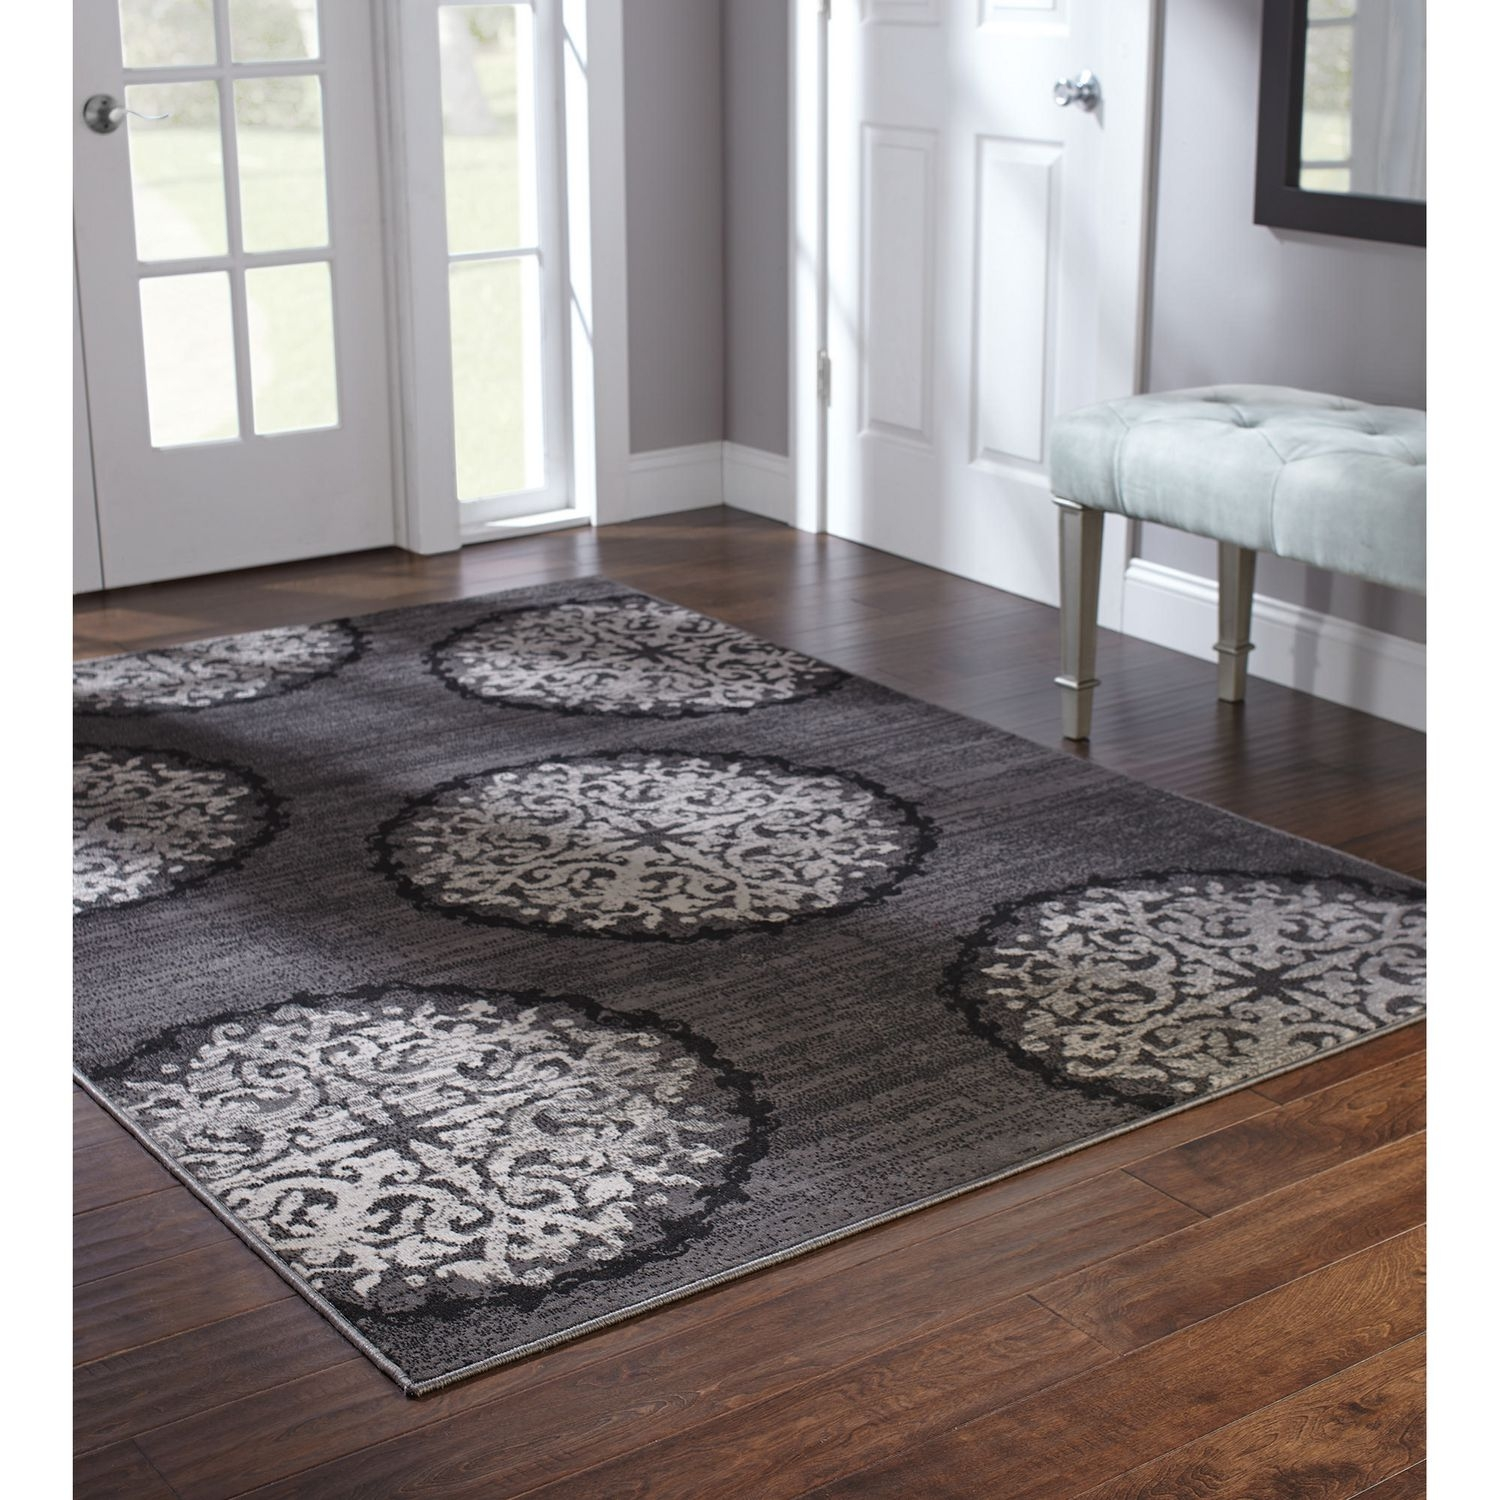 Rugs Cheap 8 X 10 Area Rugs 8×10 Area Rug Wool Area Rugs 8×10 Pertaining To Cheap Silver Rugs (View 14 of 15)